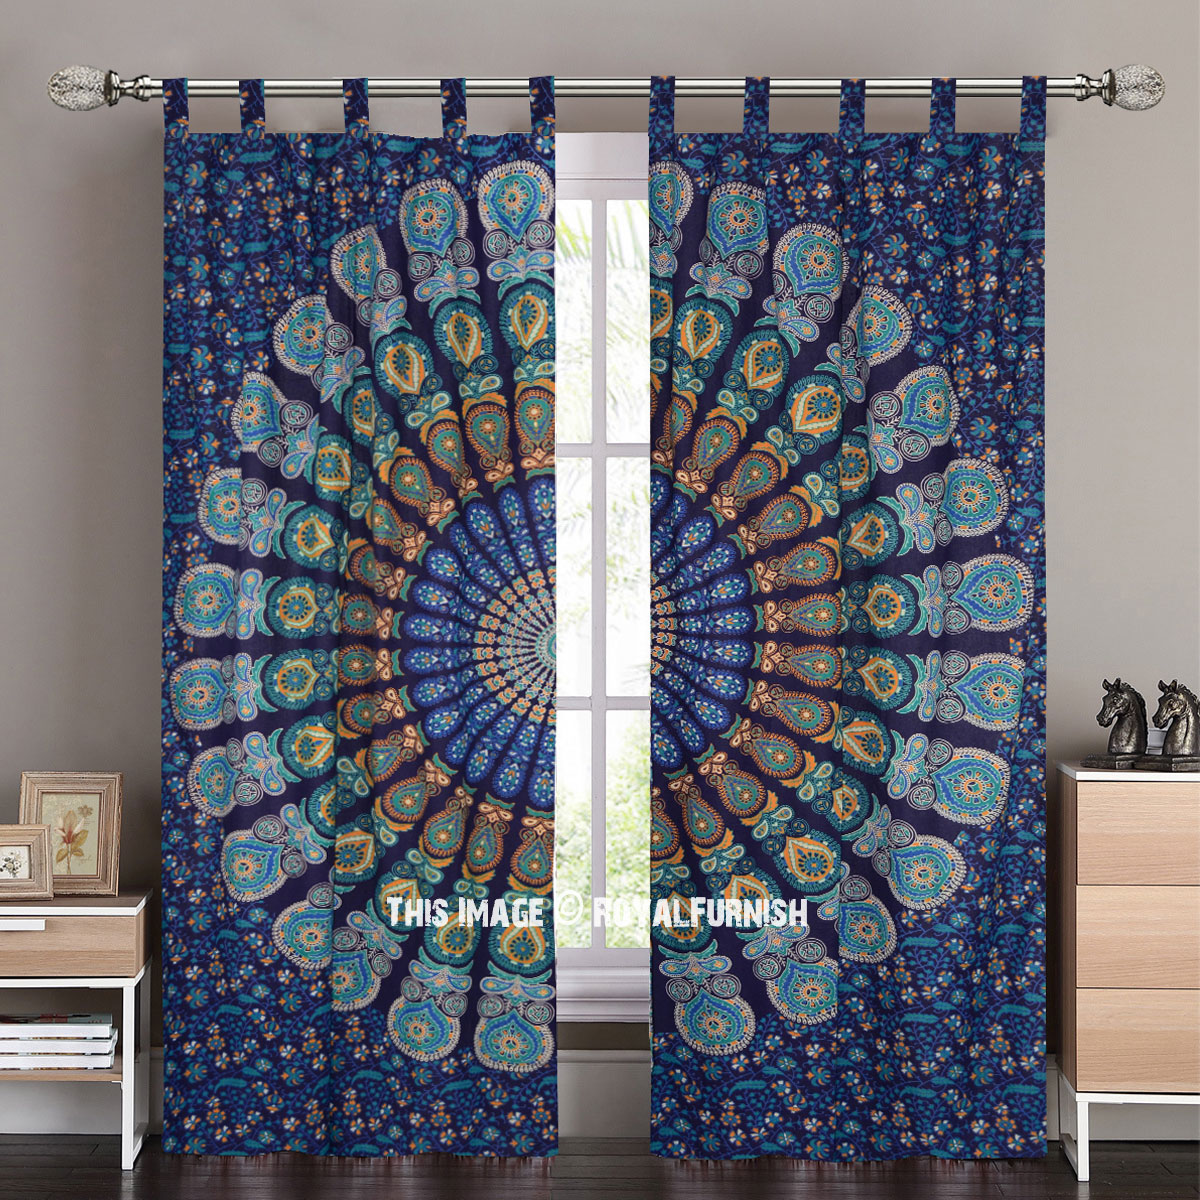 Tie Dye Curtain Panels